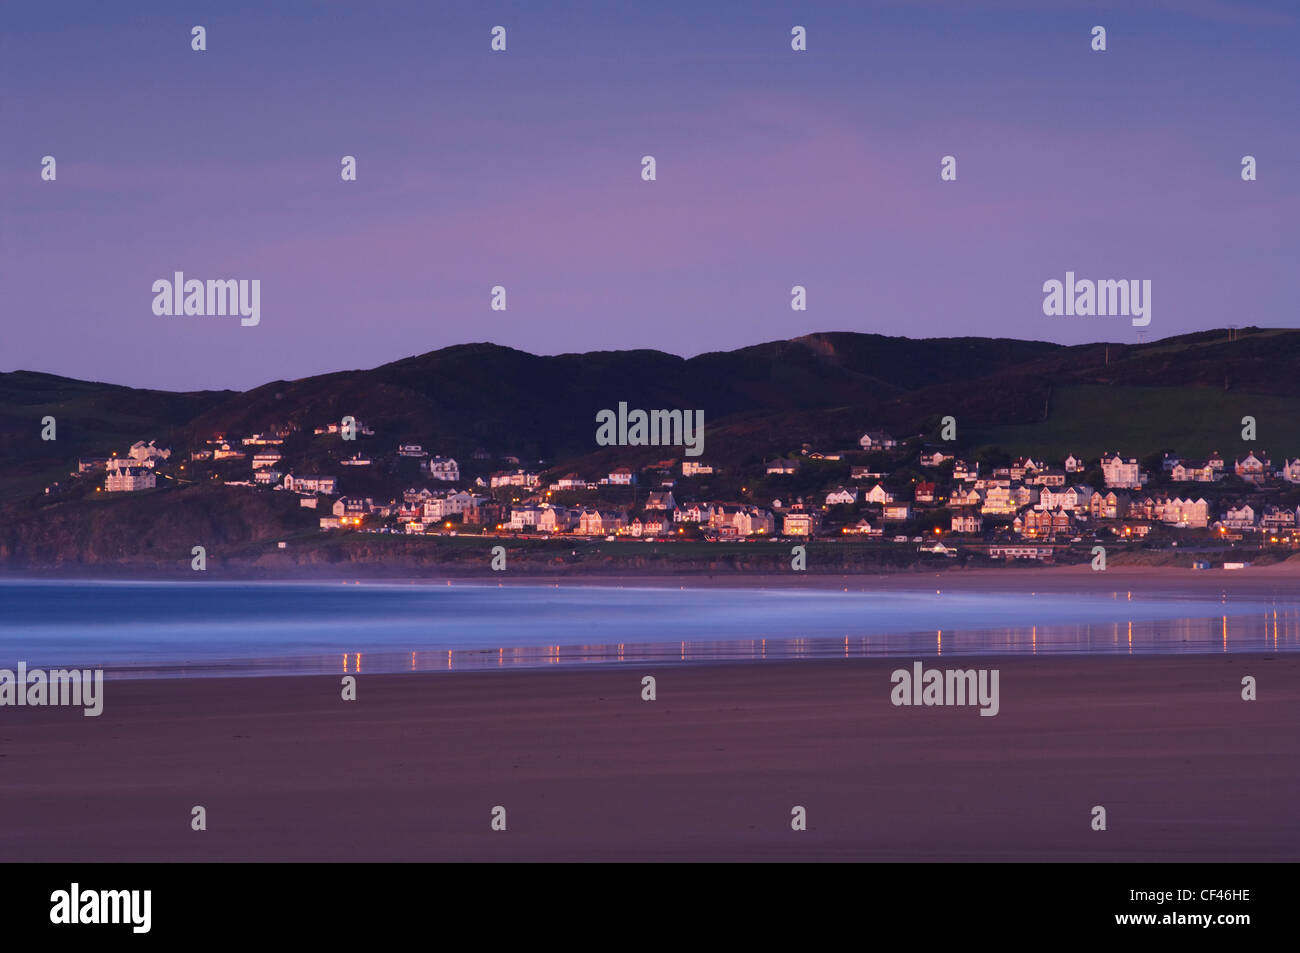 The small seaside resort of Woolacombe at dawn from Putsborough beach on the North Devon coast. - Stock Image